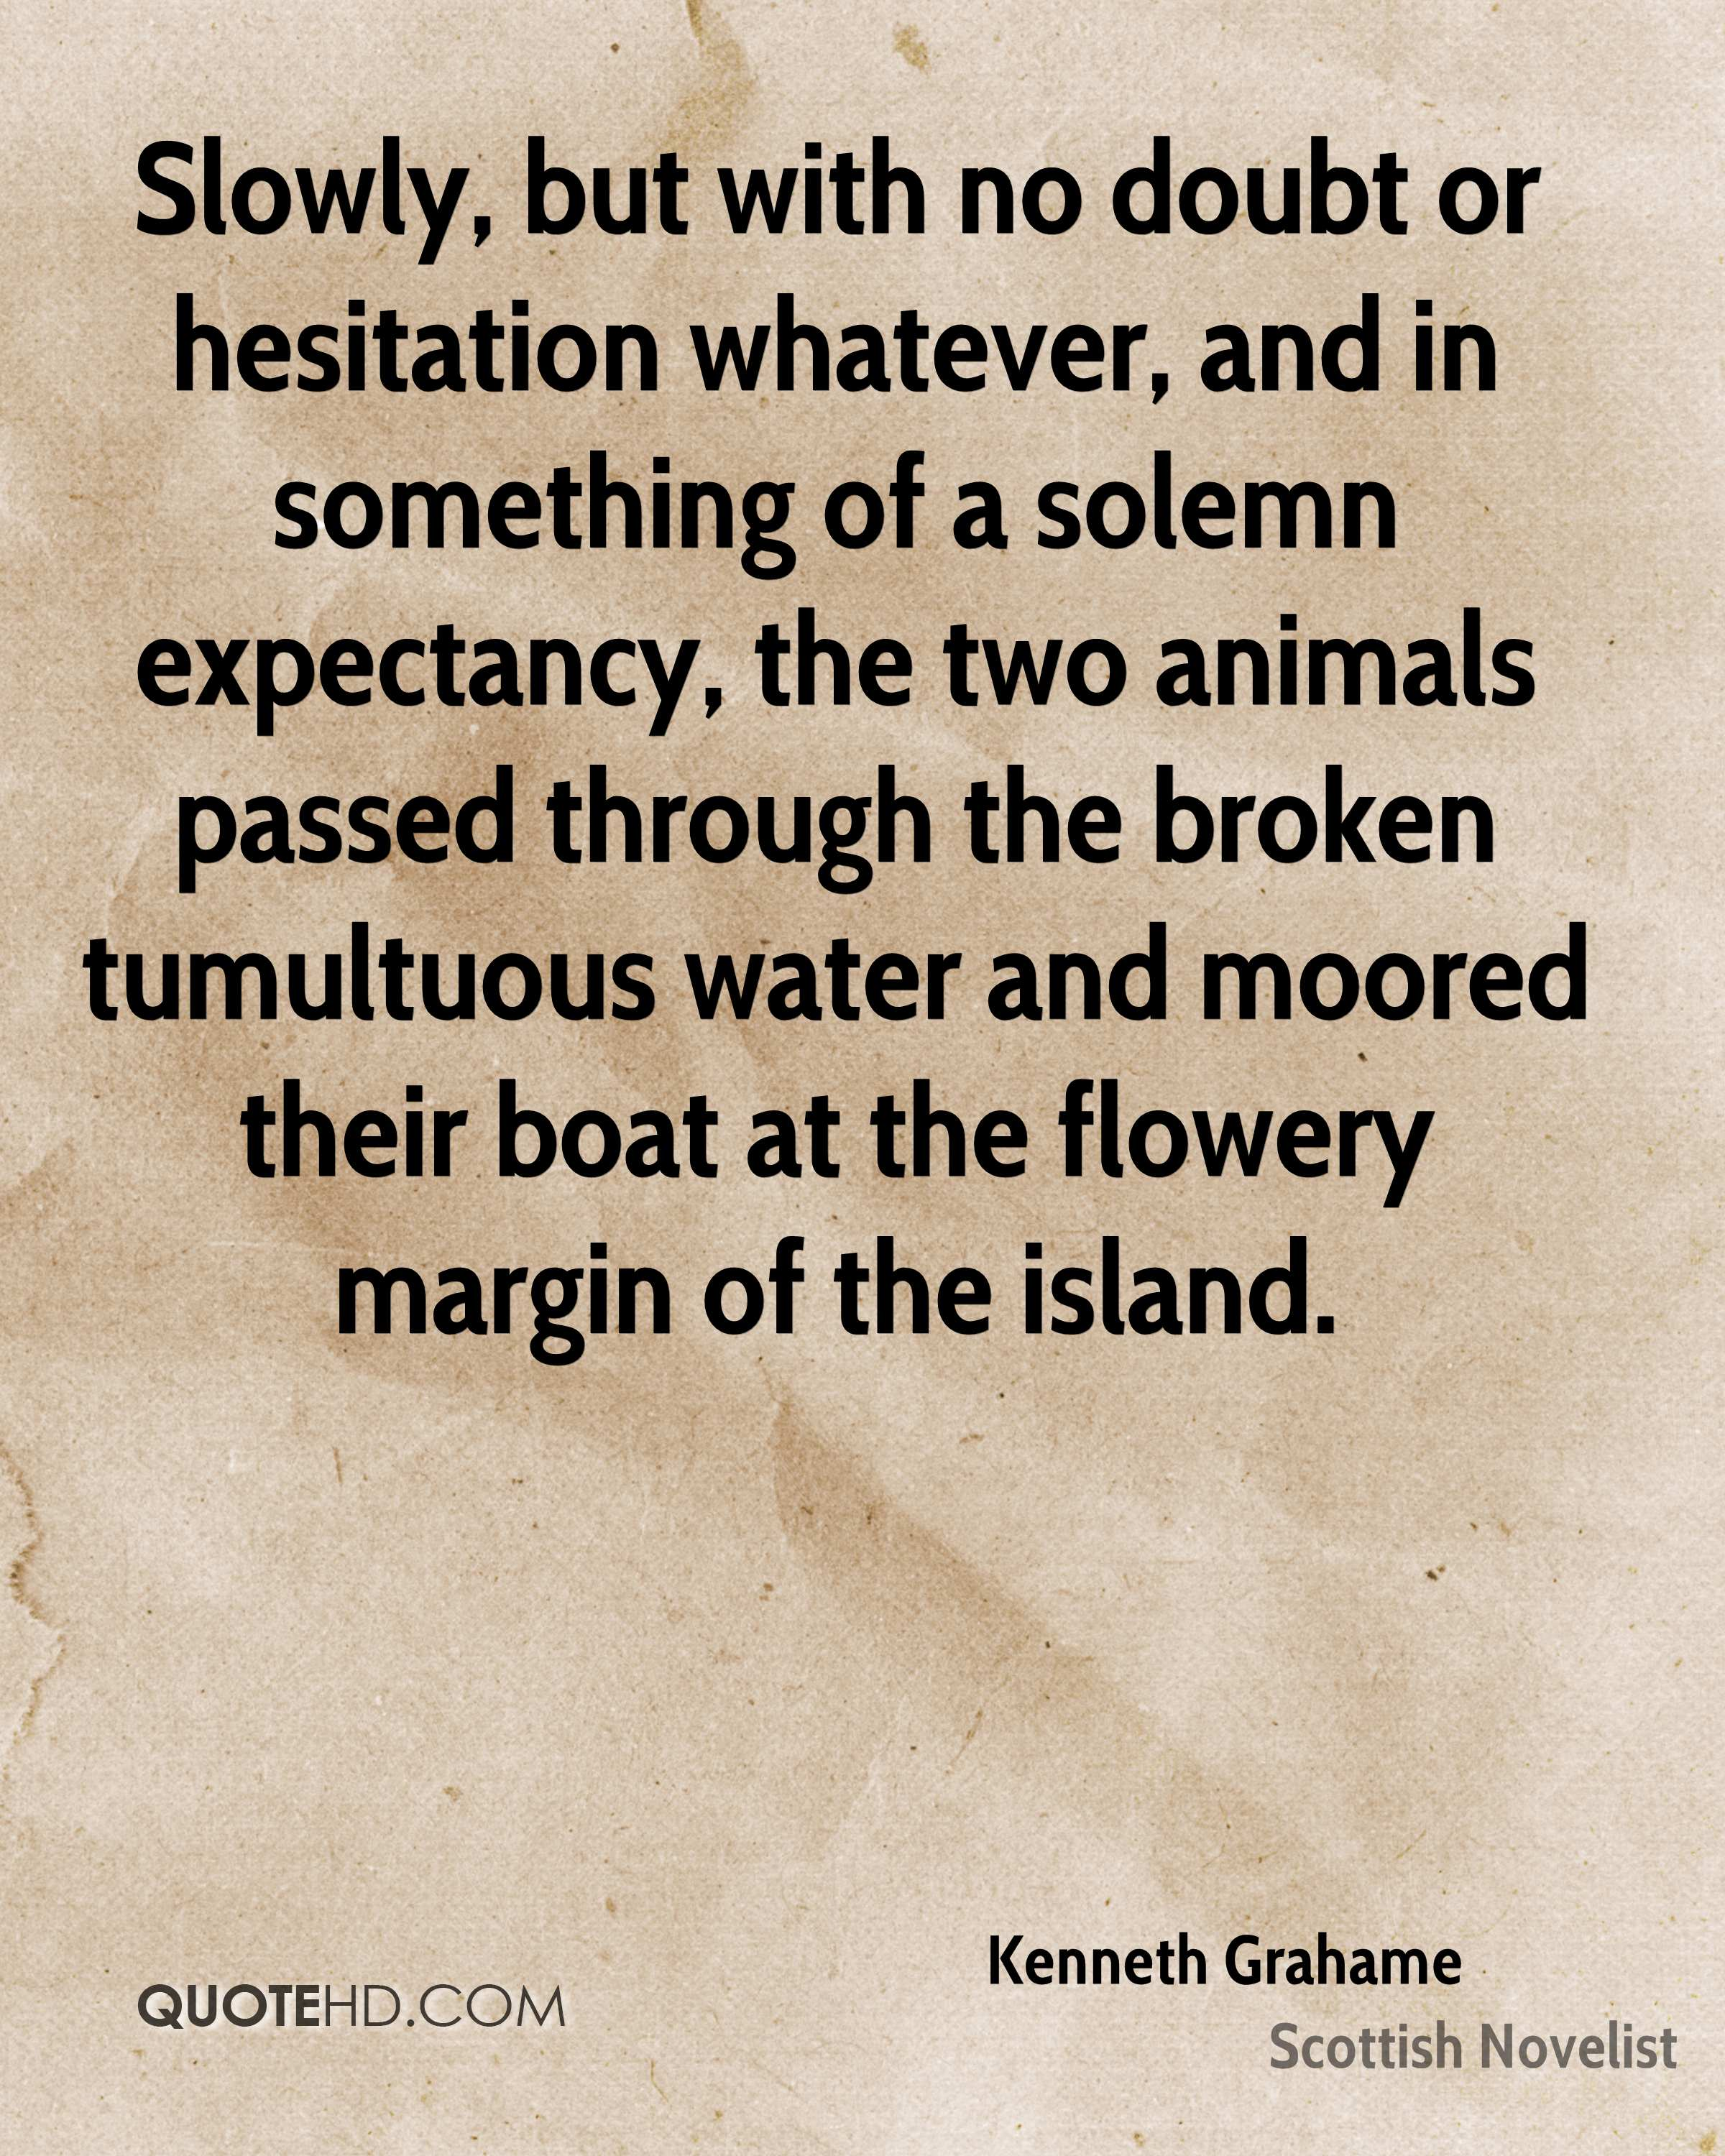 Slowly, but with no doubt or hesitation whatever, and in something of a solemn expectancy, the two animals passed through the broken tumultuous water and moored their boat at the flowery margin of the island.